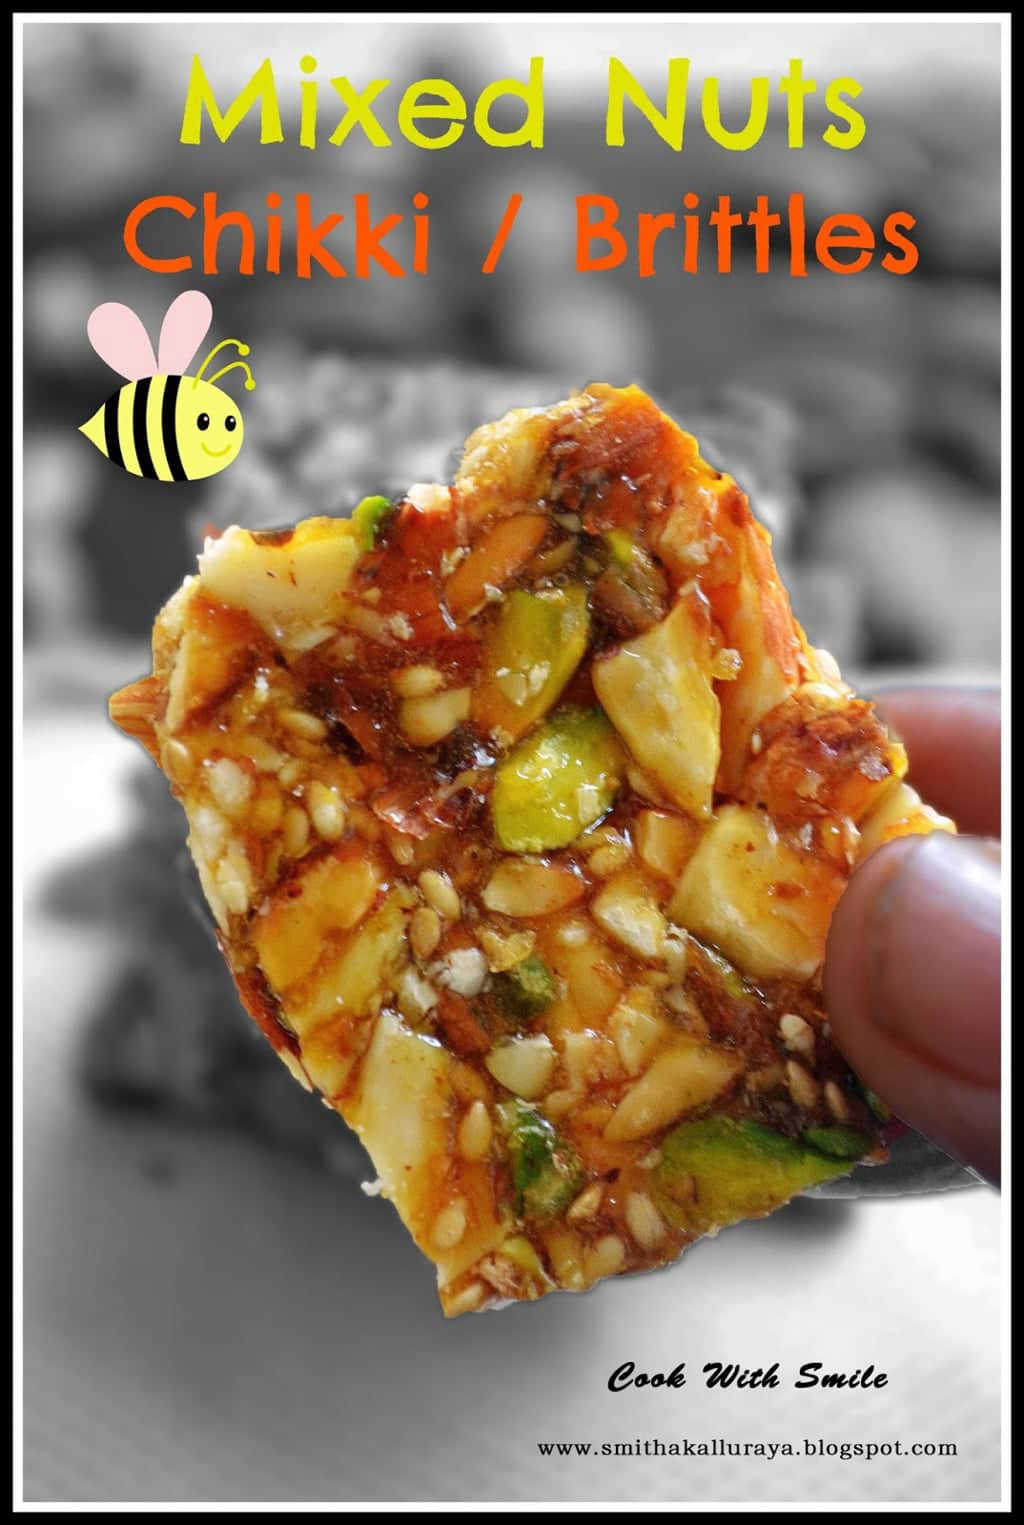 MIXED NUTS BRITTLE